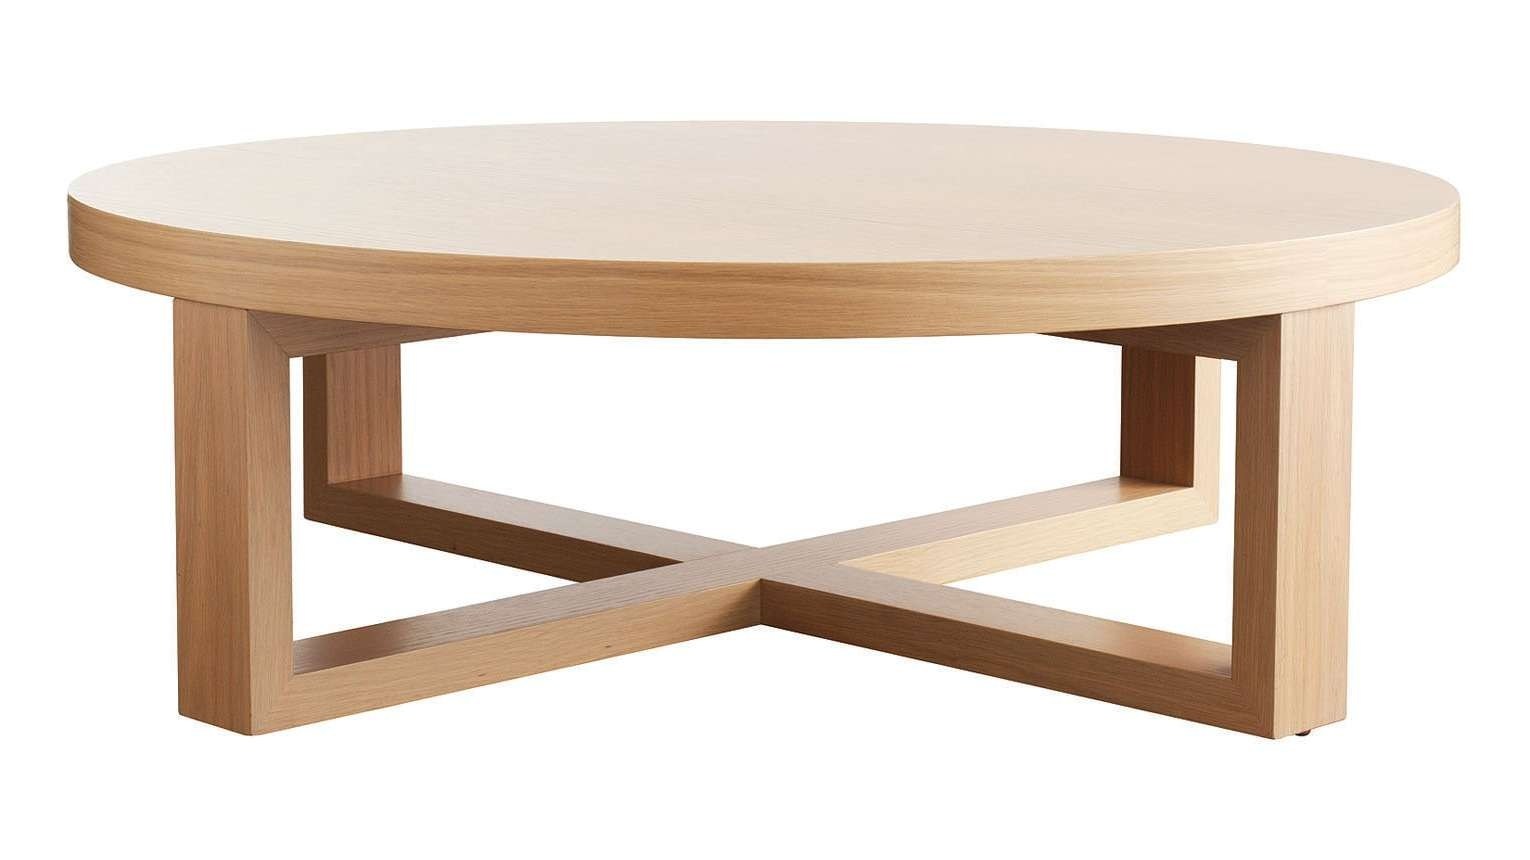 Zuster Furniture April Round Coffee Table Regarding Latest Round Coffee Tables (Gallery 20 of 20)